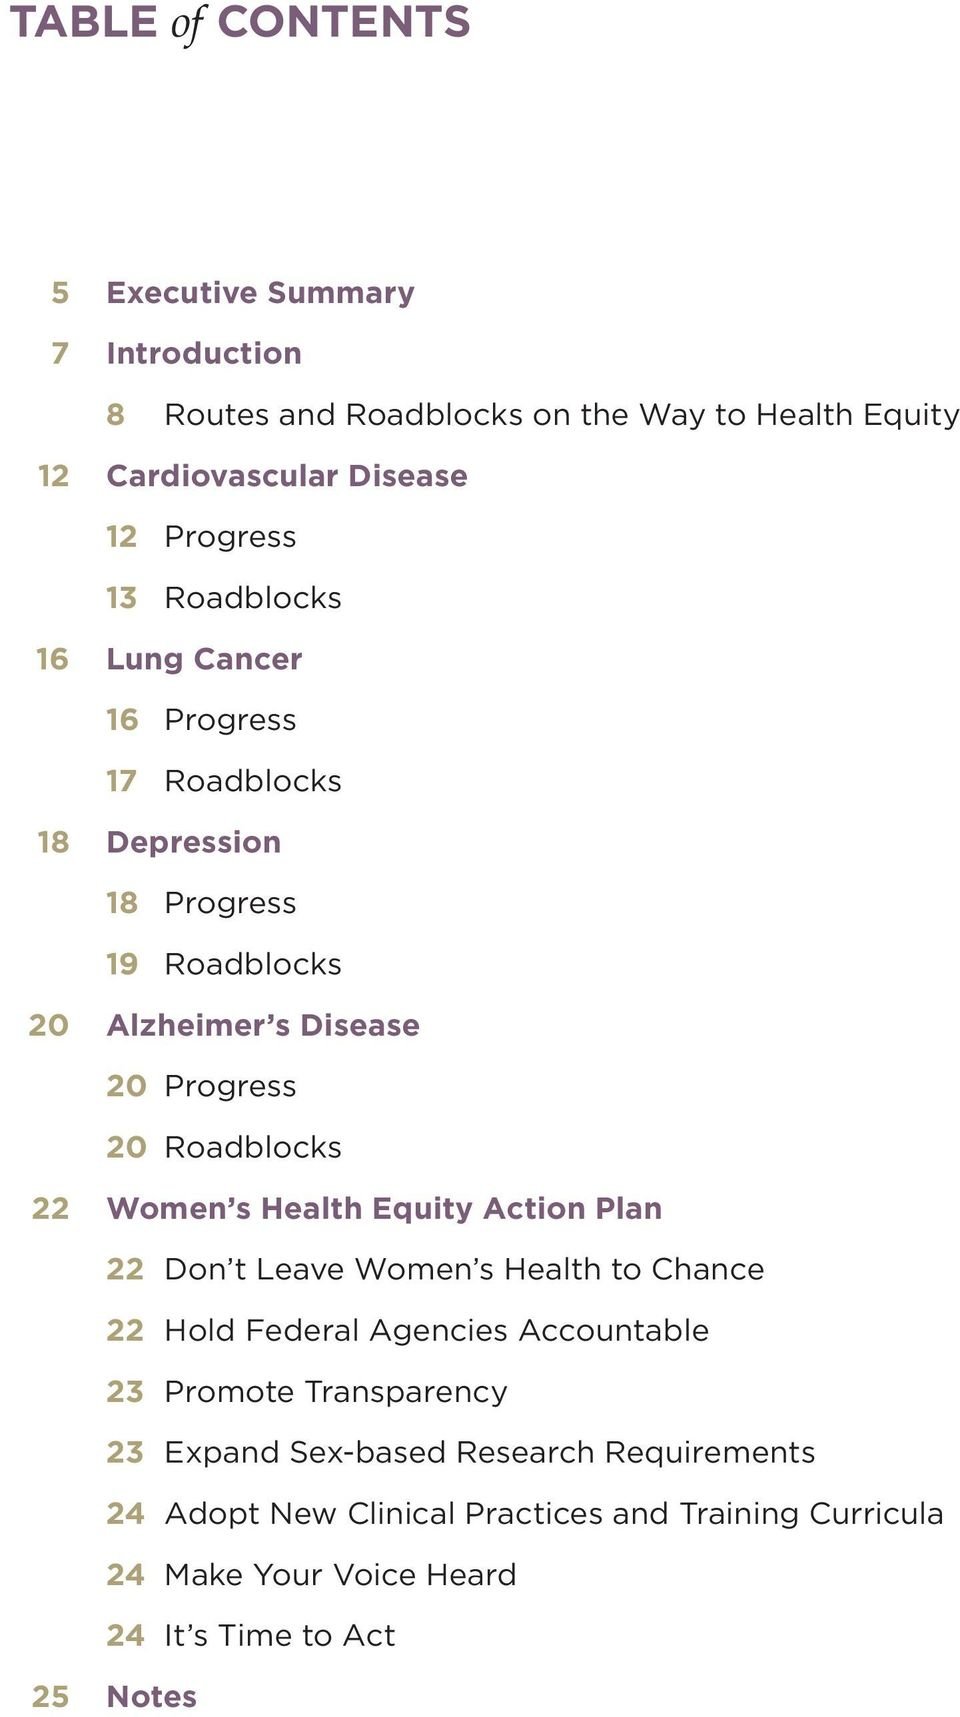 Roadblocks 22 Women s Health Equity Action Plan 22 Don t Leave Women s Health to Chance 22 Hold Federal Agencies Accountable 23 Promote